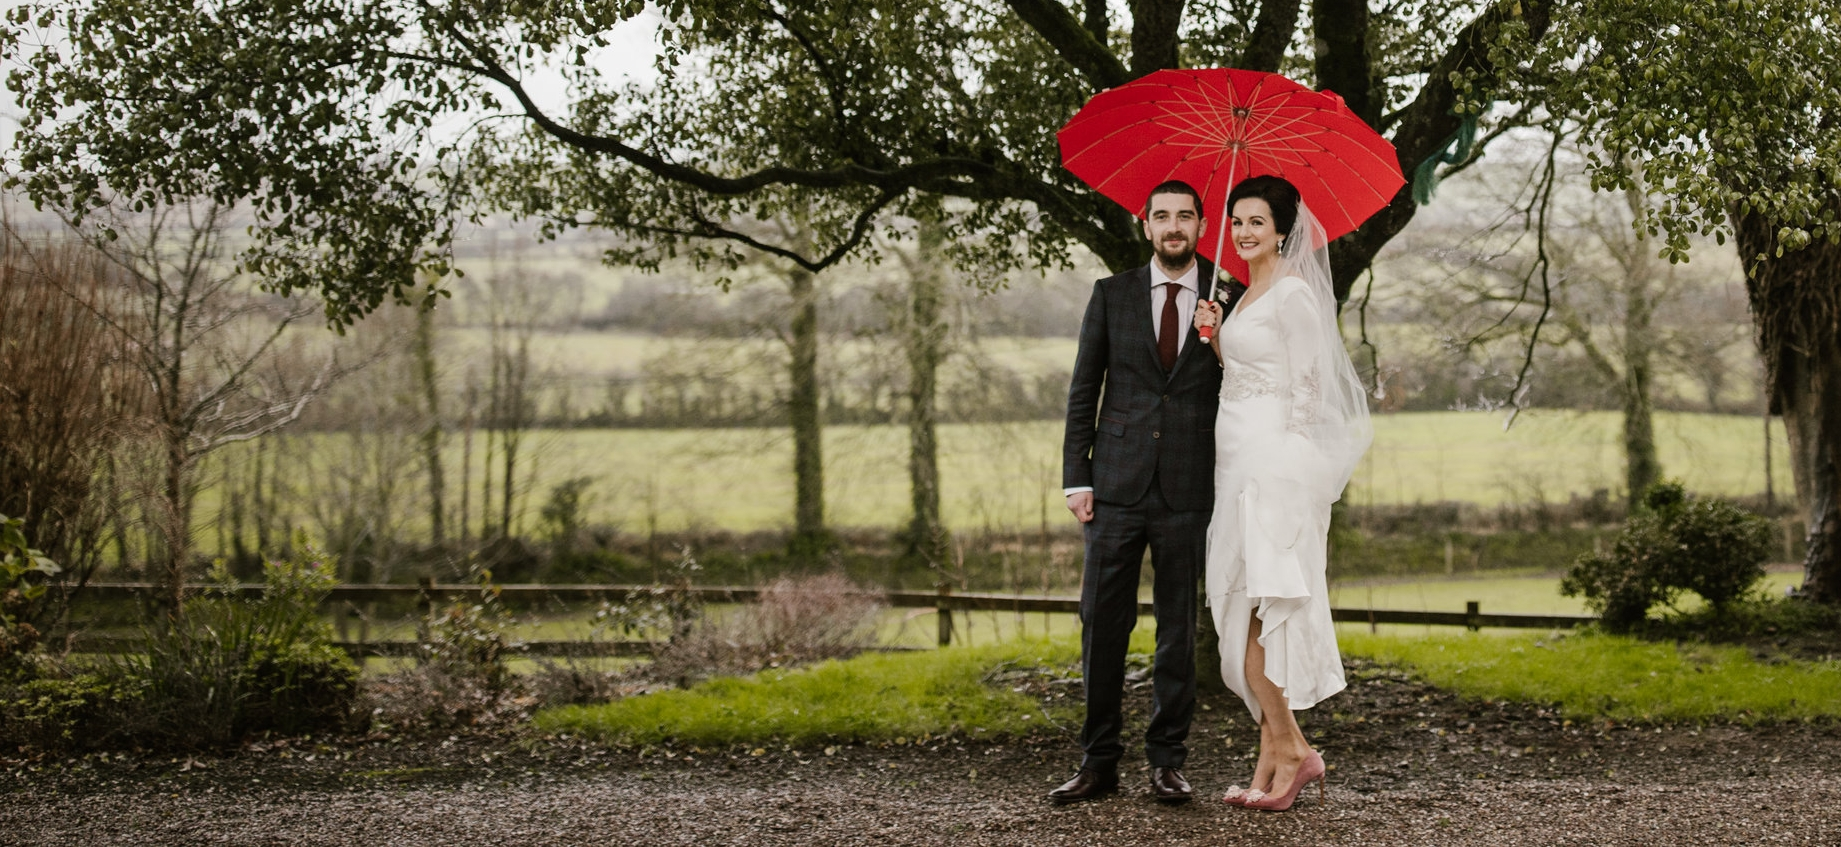 Brian & Emma - Barnabrow House,Cloyne, Midleton, Co. CorkPhoto by : White Cat Studio